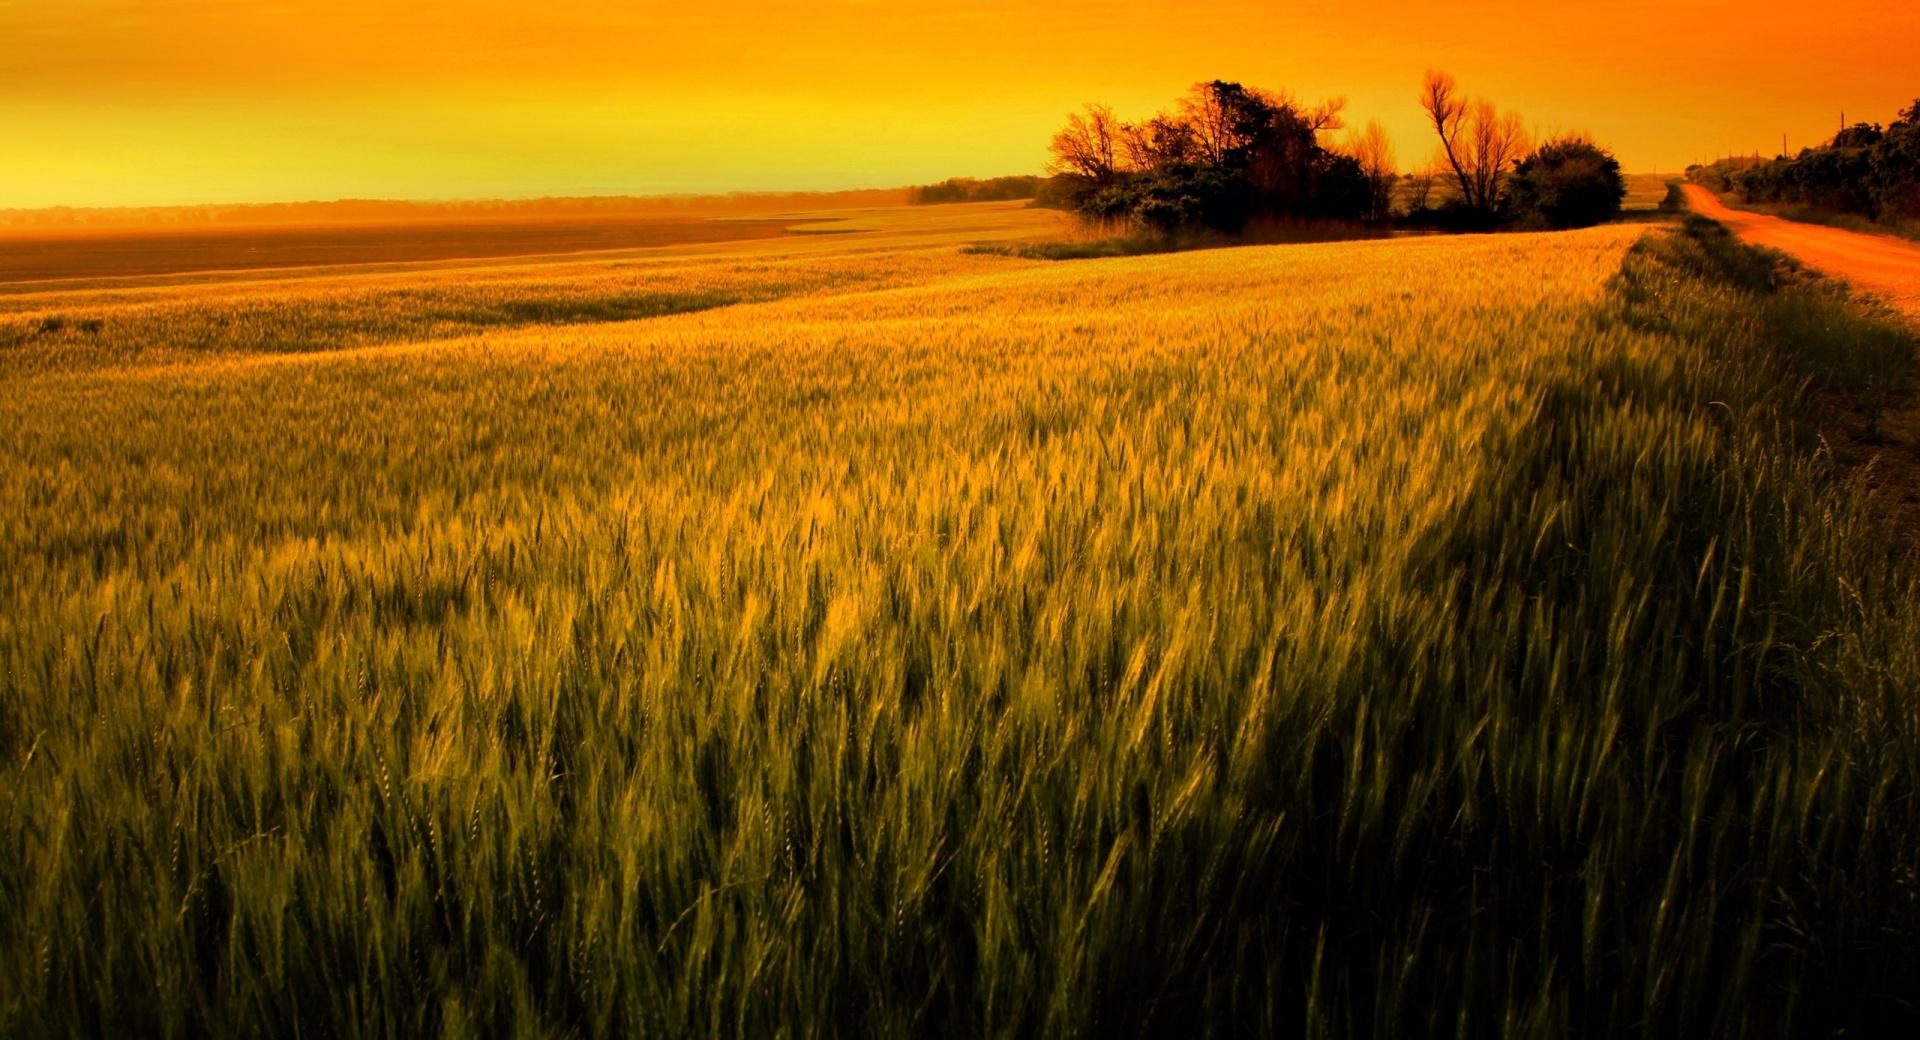 Sunset Over Wheat Field wallpapers HD quality